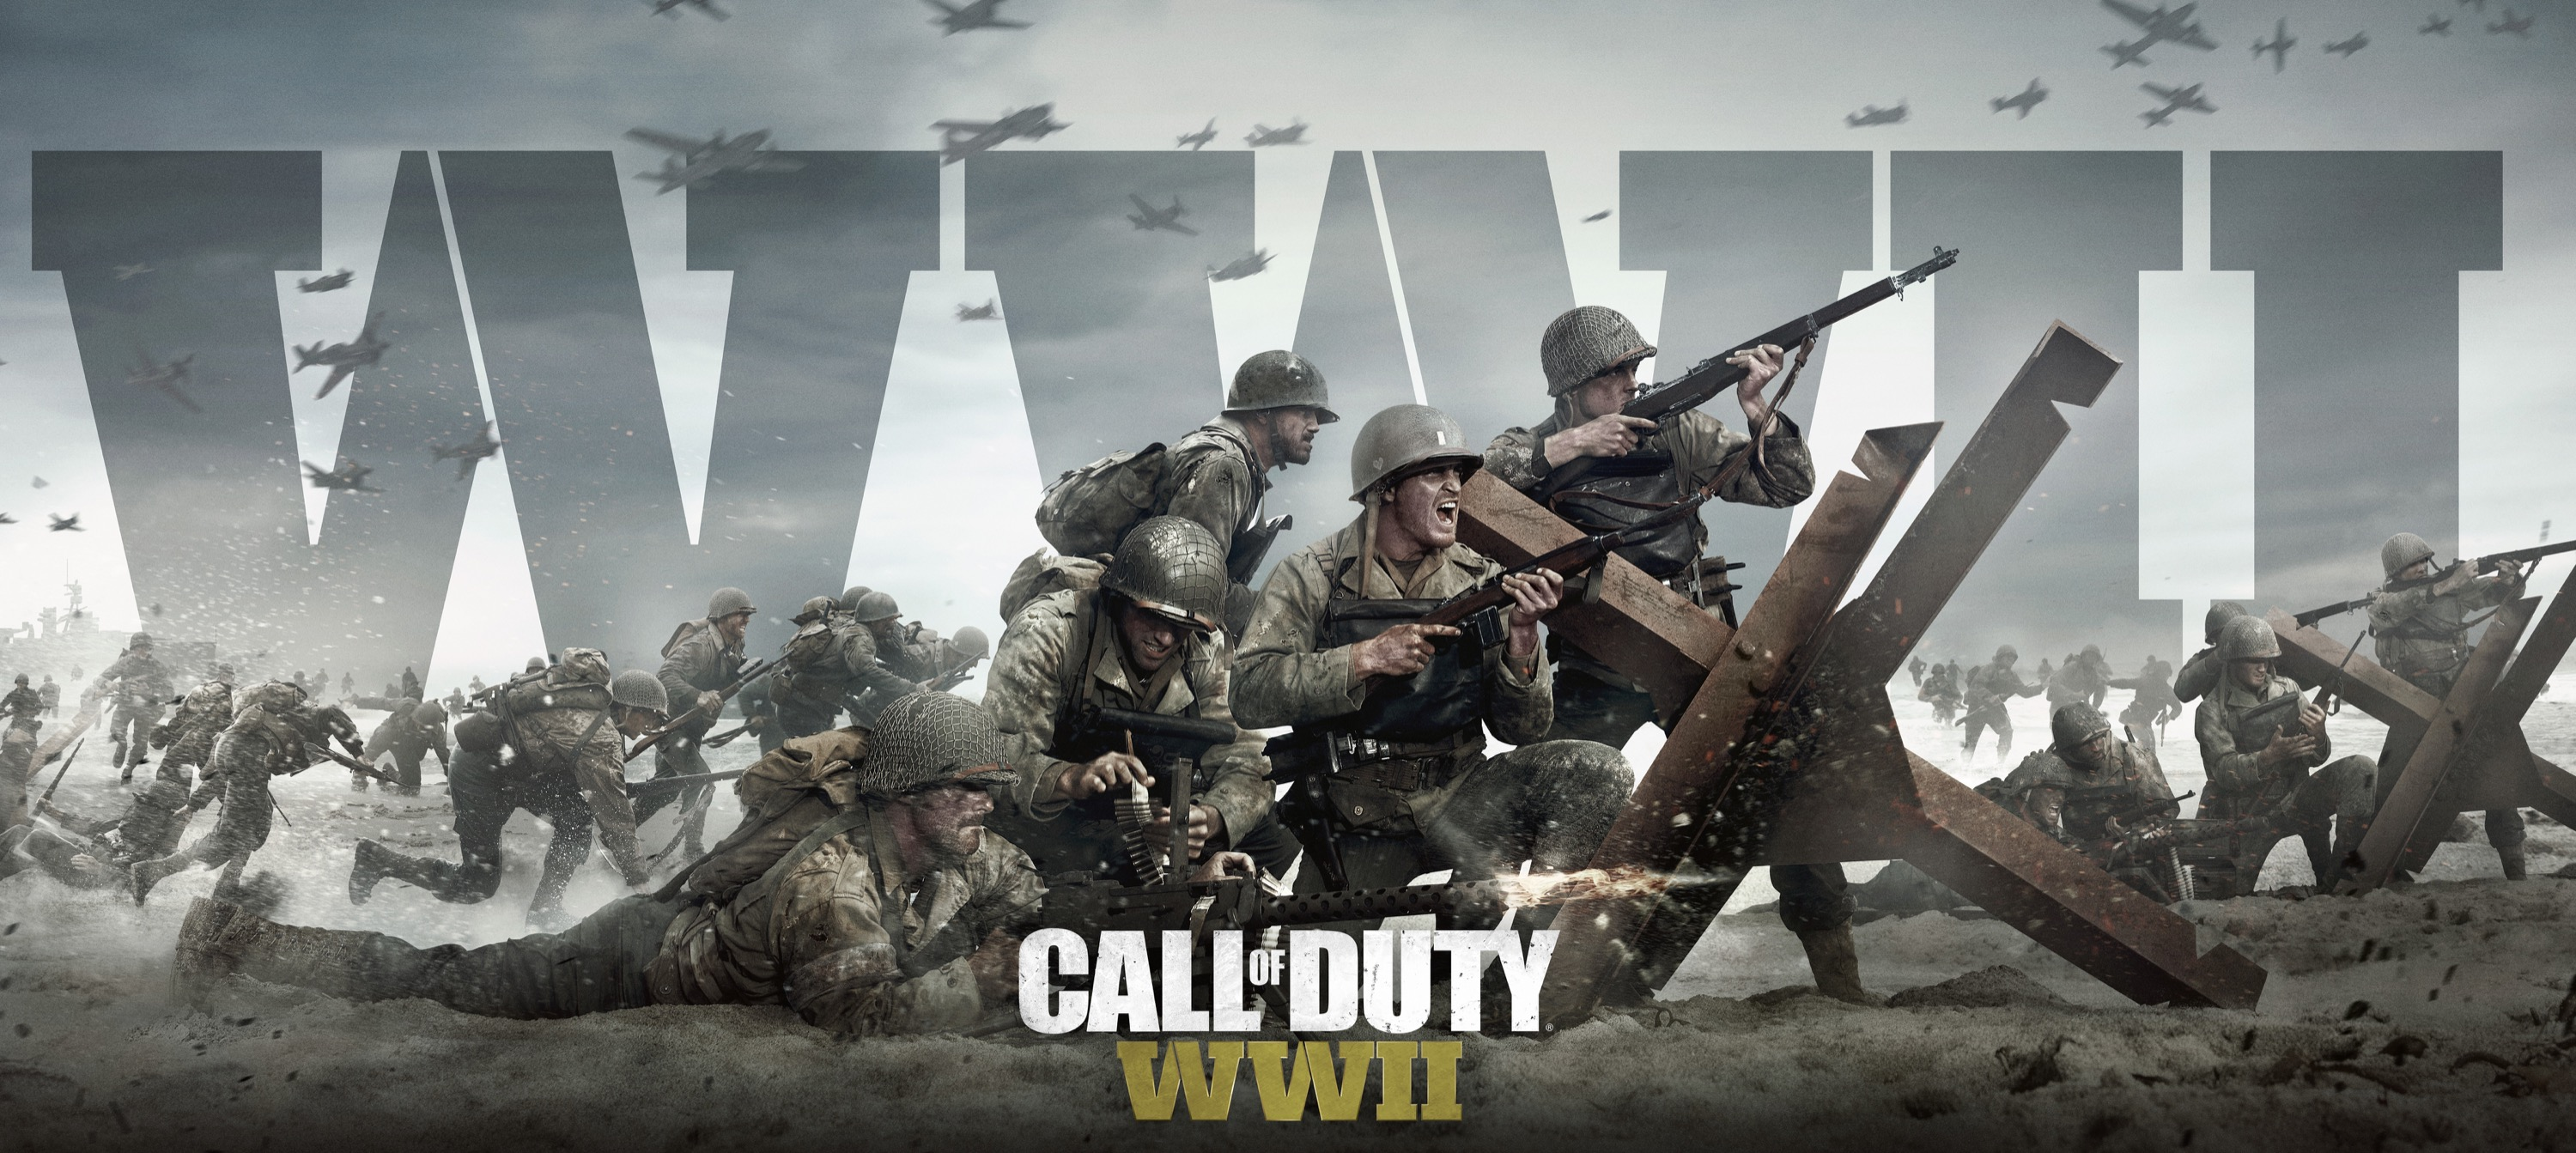 call of duty ww2 games hd 4k wallpapers